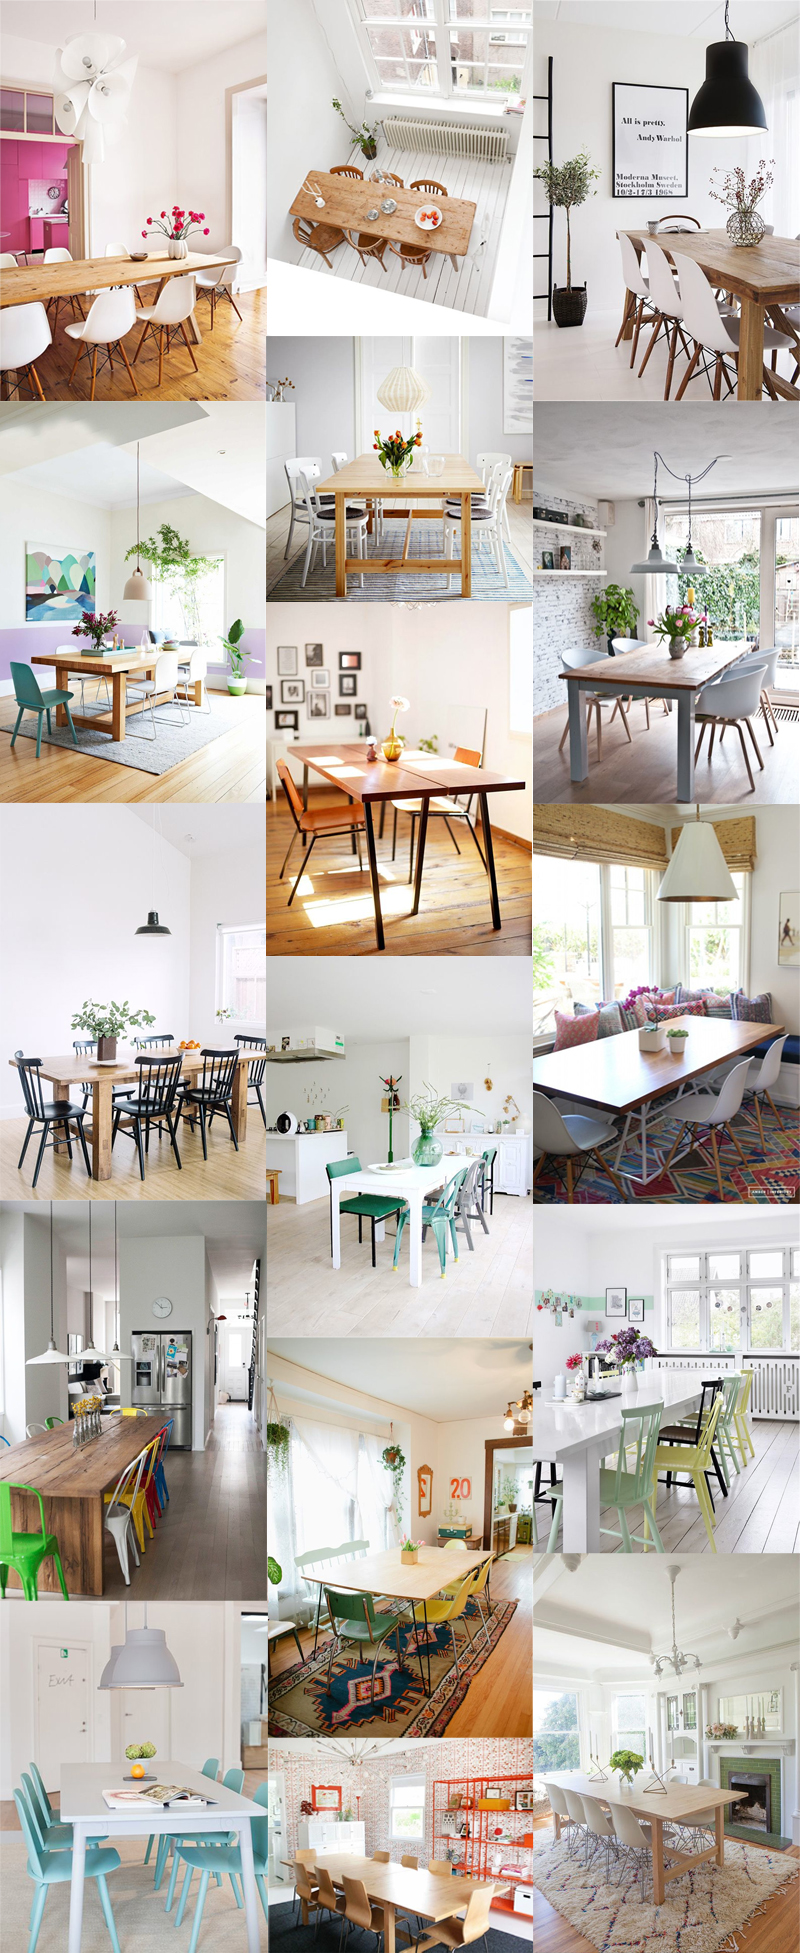 My first place - long dining table